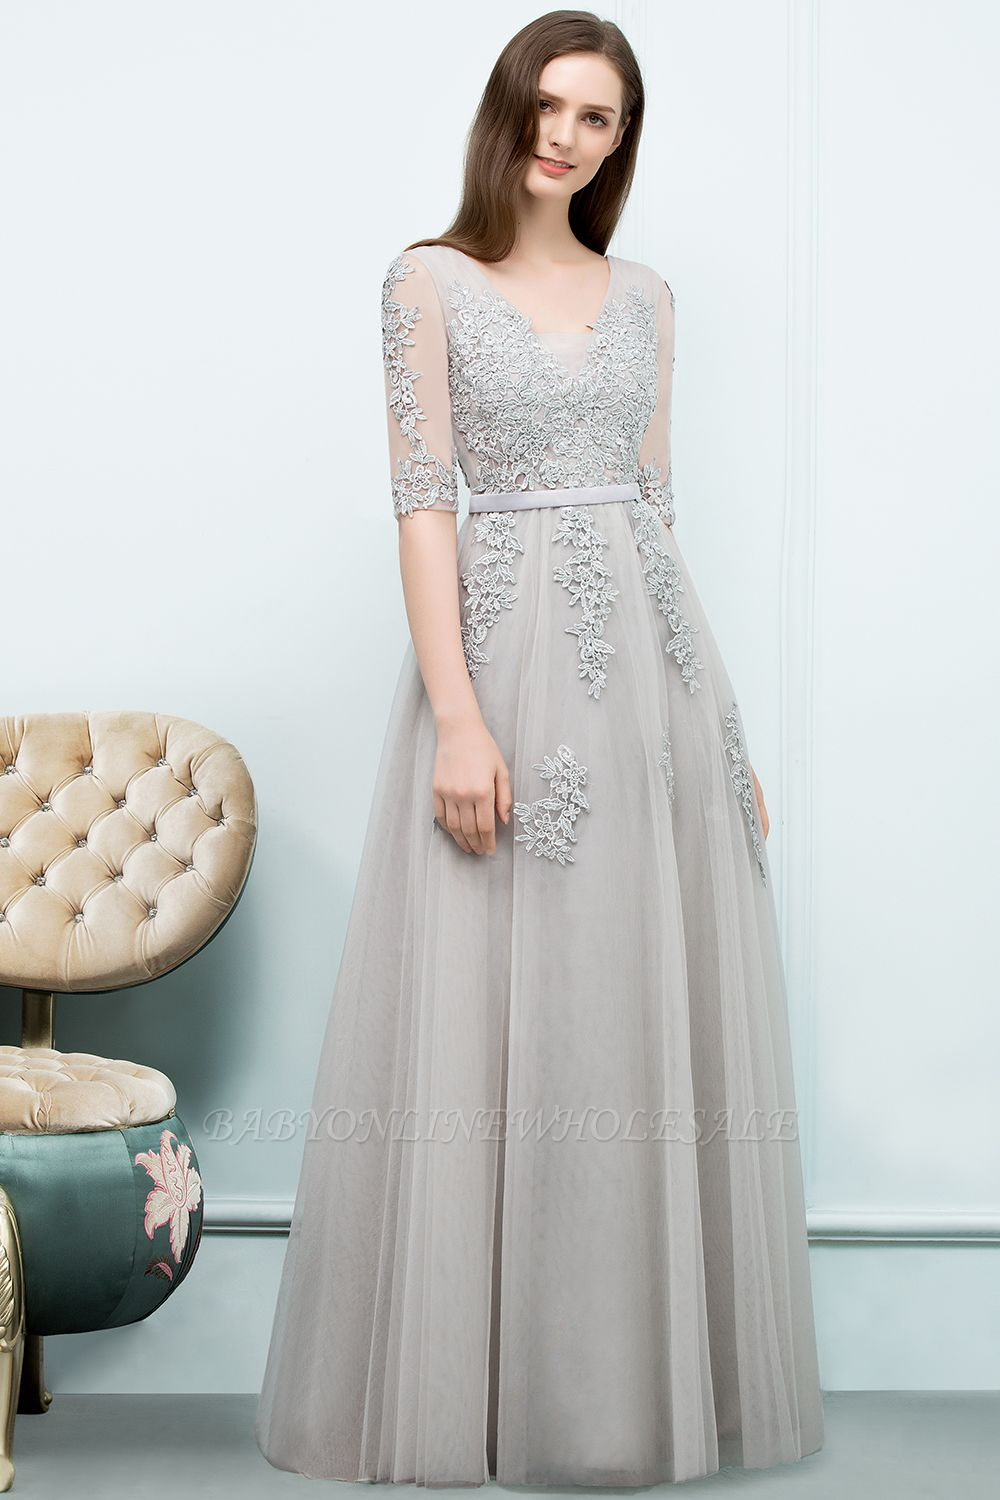 JORDYNN | A-line Half-sleeve V-neck Floor Length Appliqued Tulle Prom Dresses with Sash